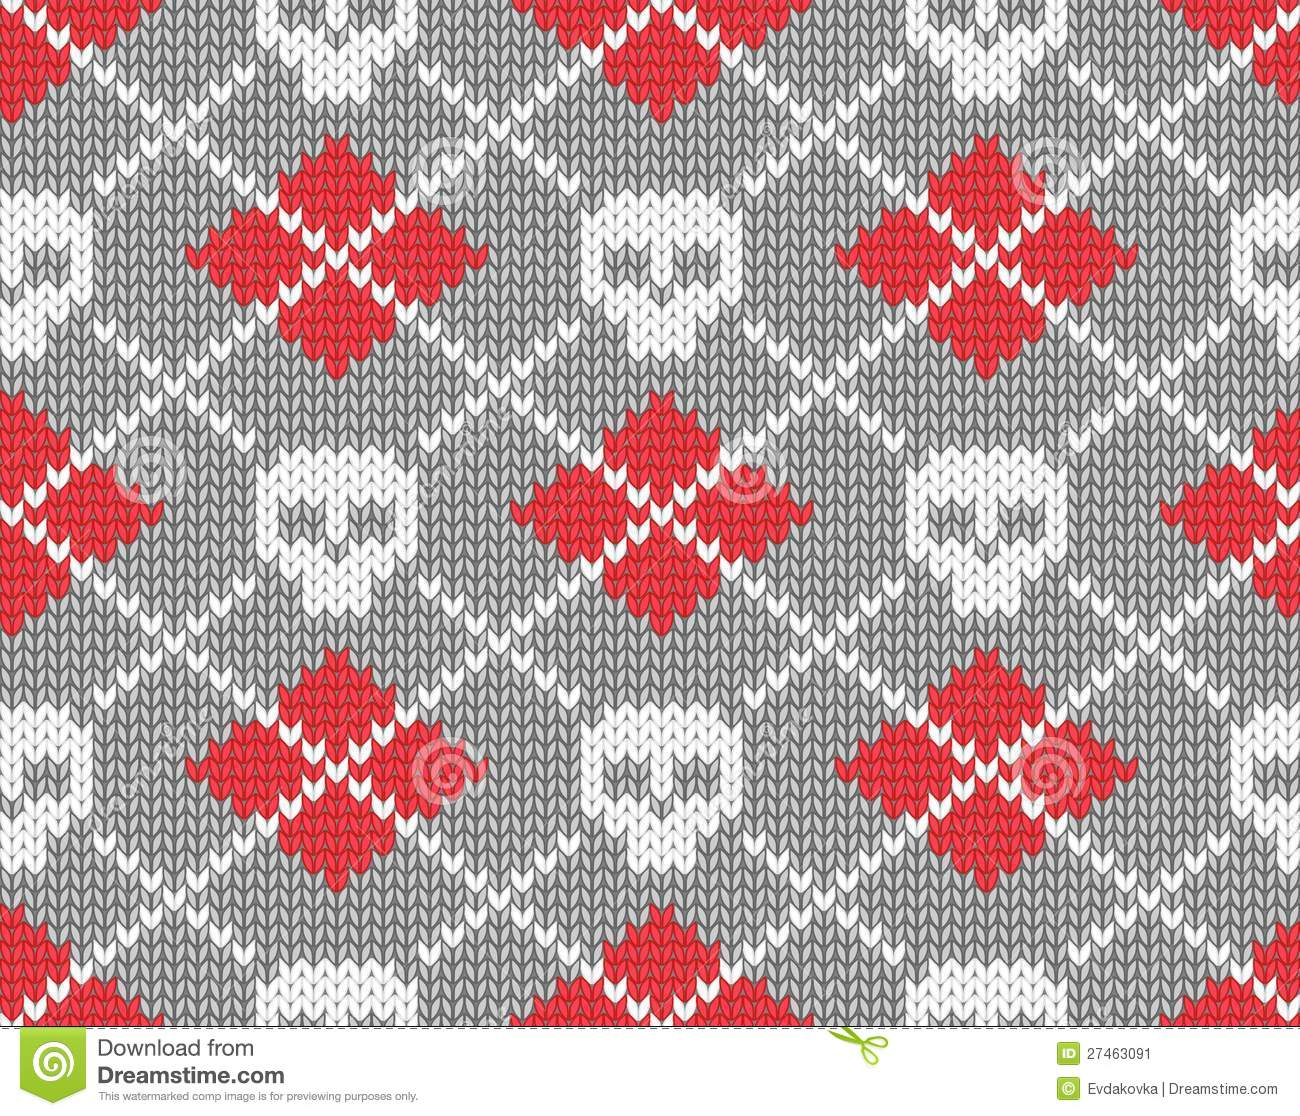 Knitted Pattern With Skulls Stock Image - Image: 27463091